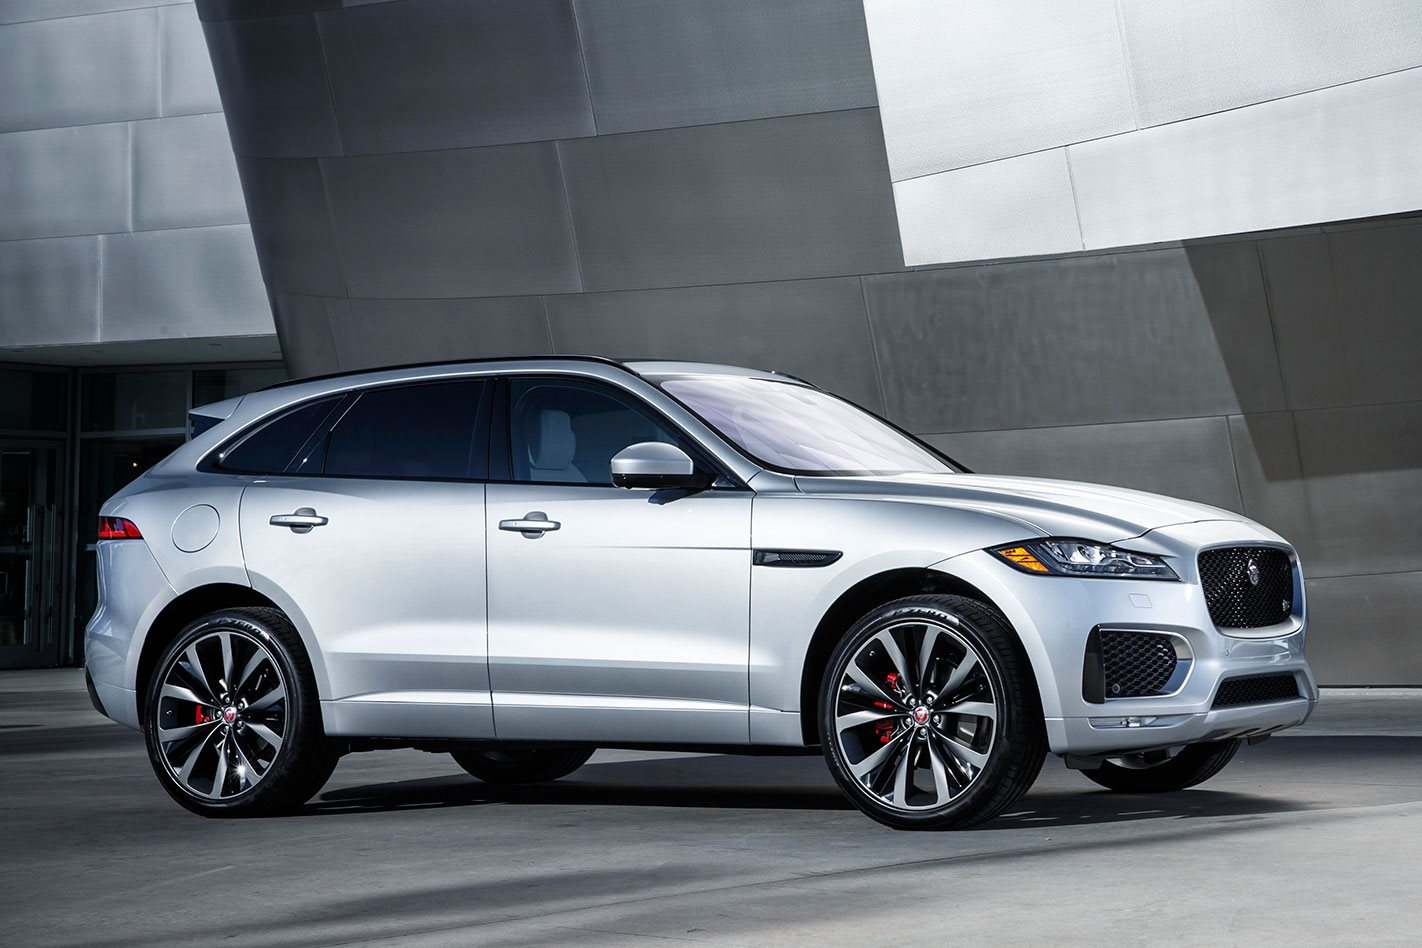 new 2016 jaguar f pace suv will double sales appeal to female buyers wheels. Black Bedroom Furniture Sets. Home Design Ideas